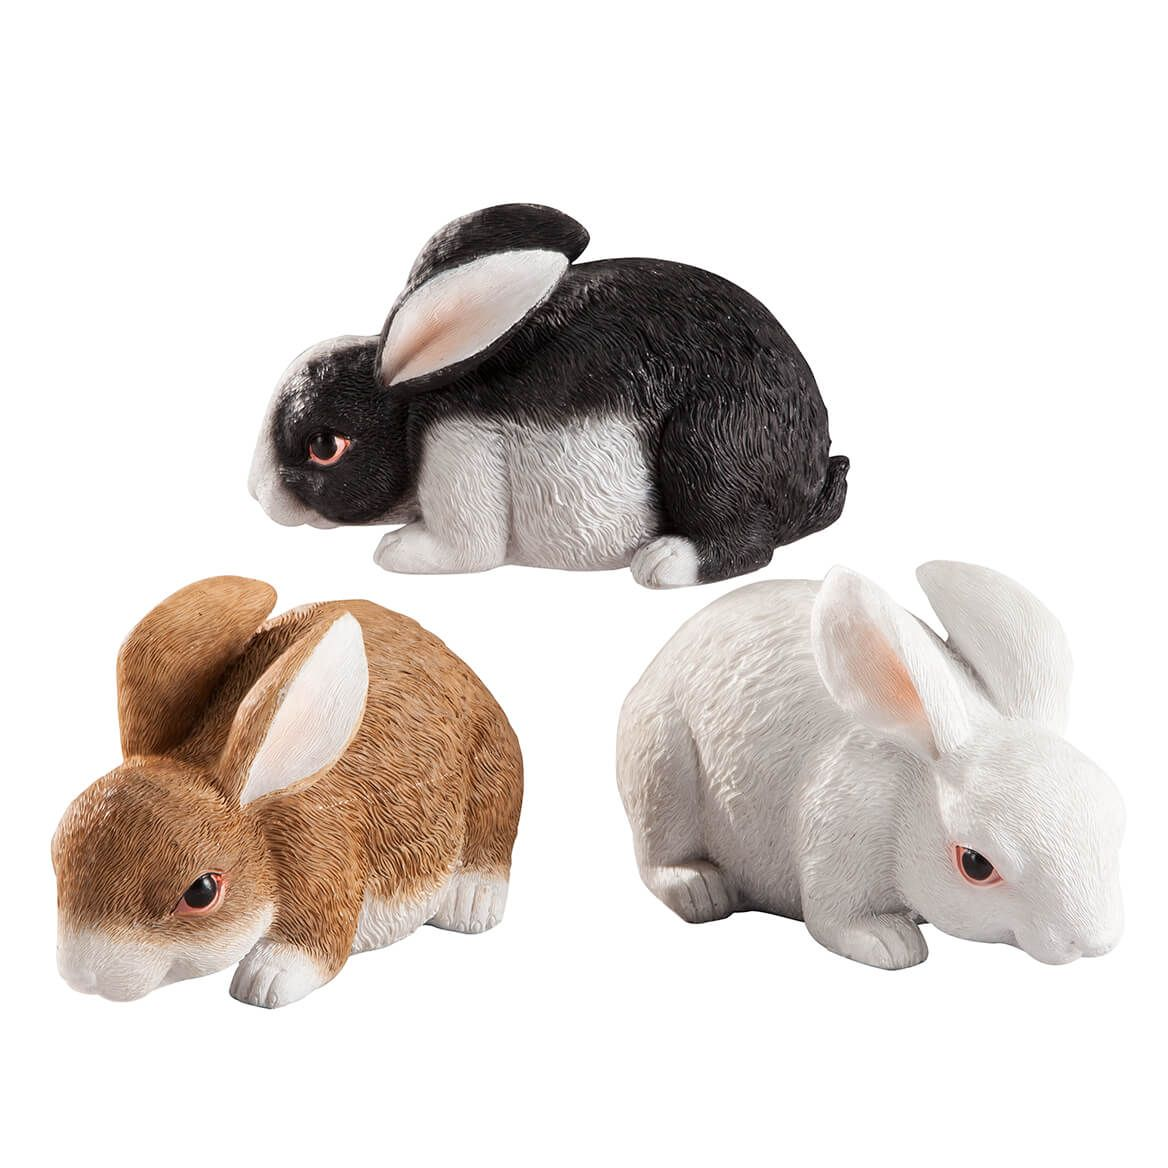 Resin Bunny Statues Set of 3-364499